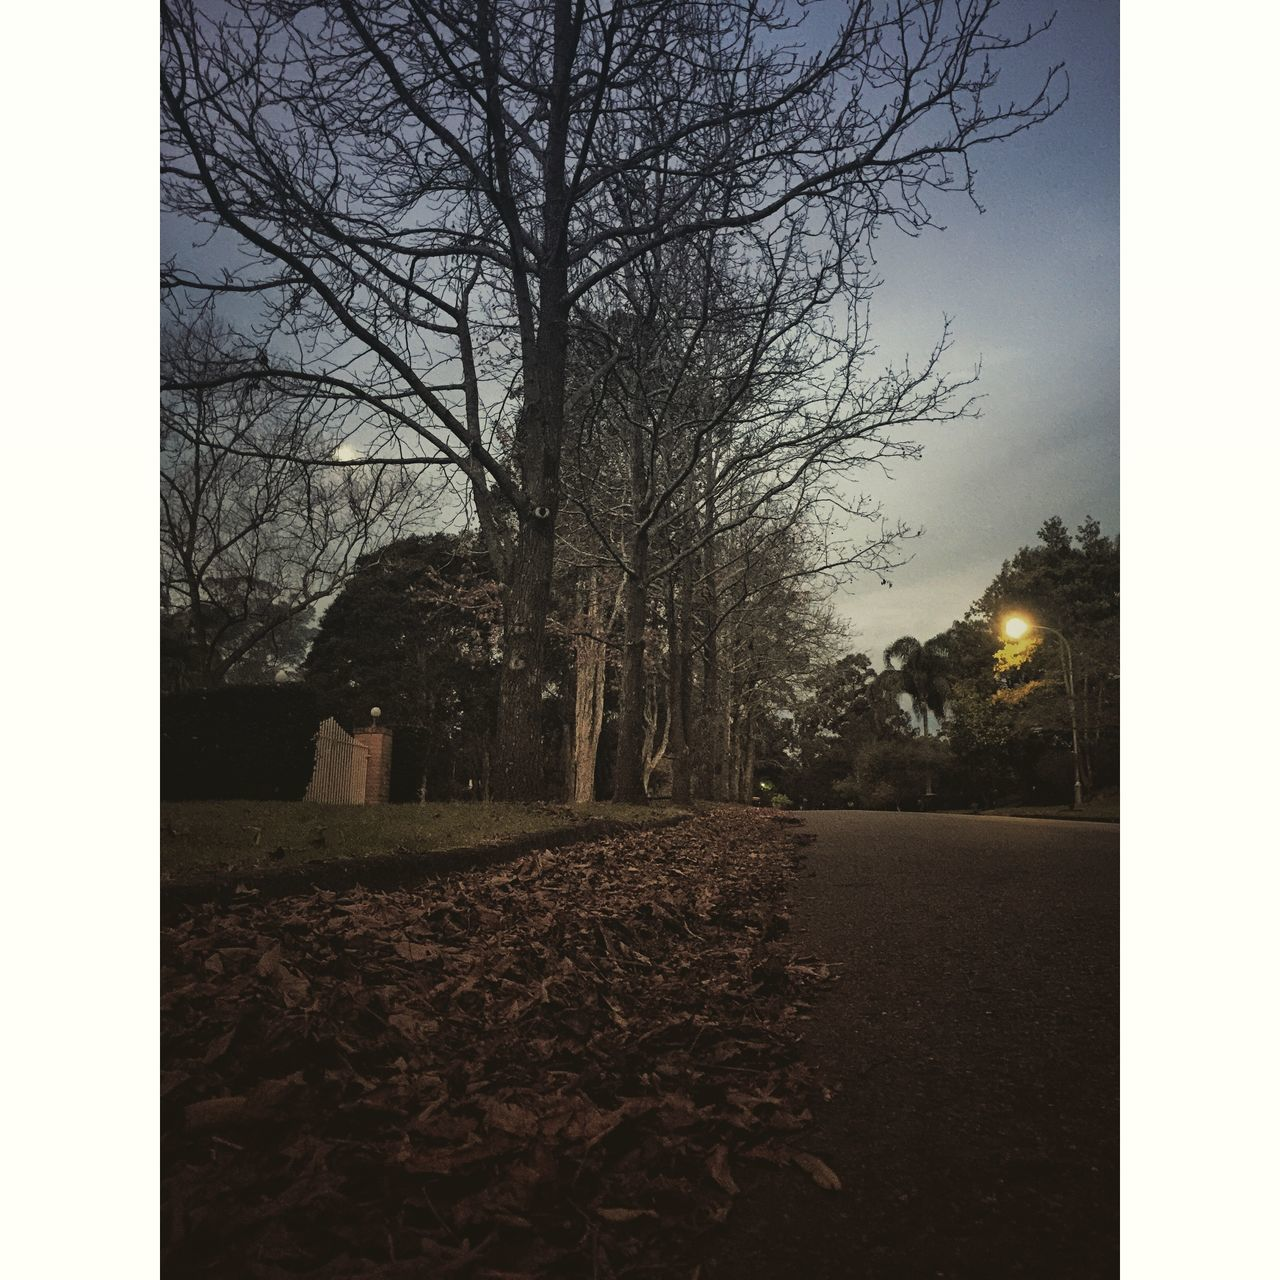 Winter night-run🍃🍂🍁💪🏻 Beautiful Nature Work Out Time Happy With This View Instamoment EyeEm Nature Lover Enjoying Life Instaskylovers Landscape Winter Trees Sydney Iphoneography